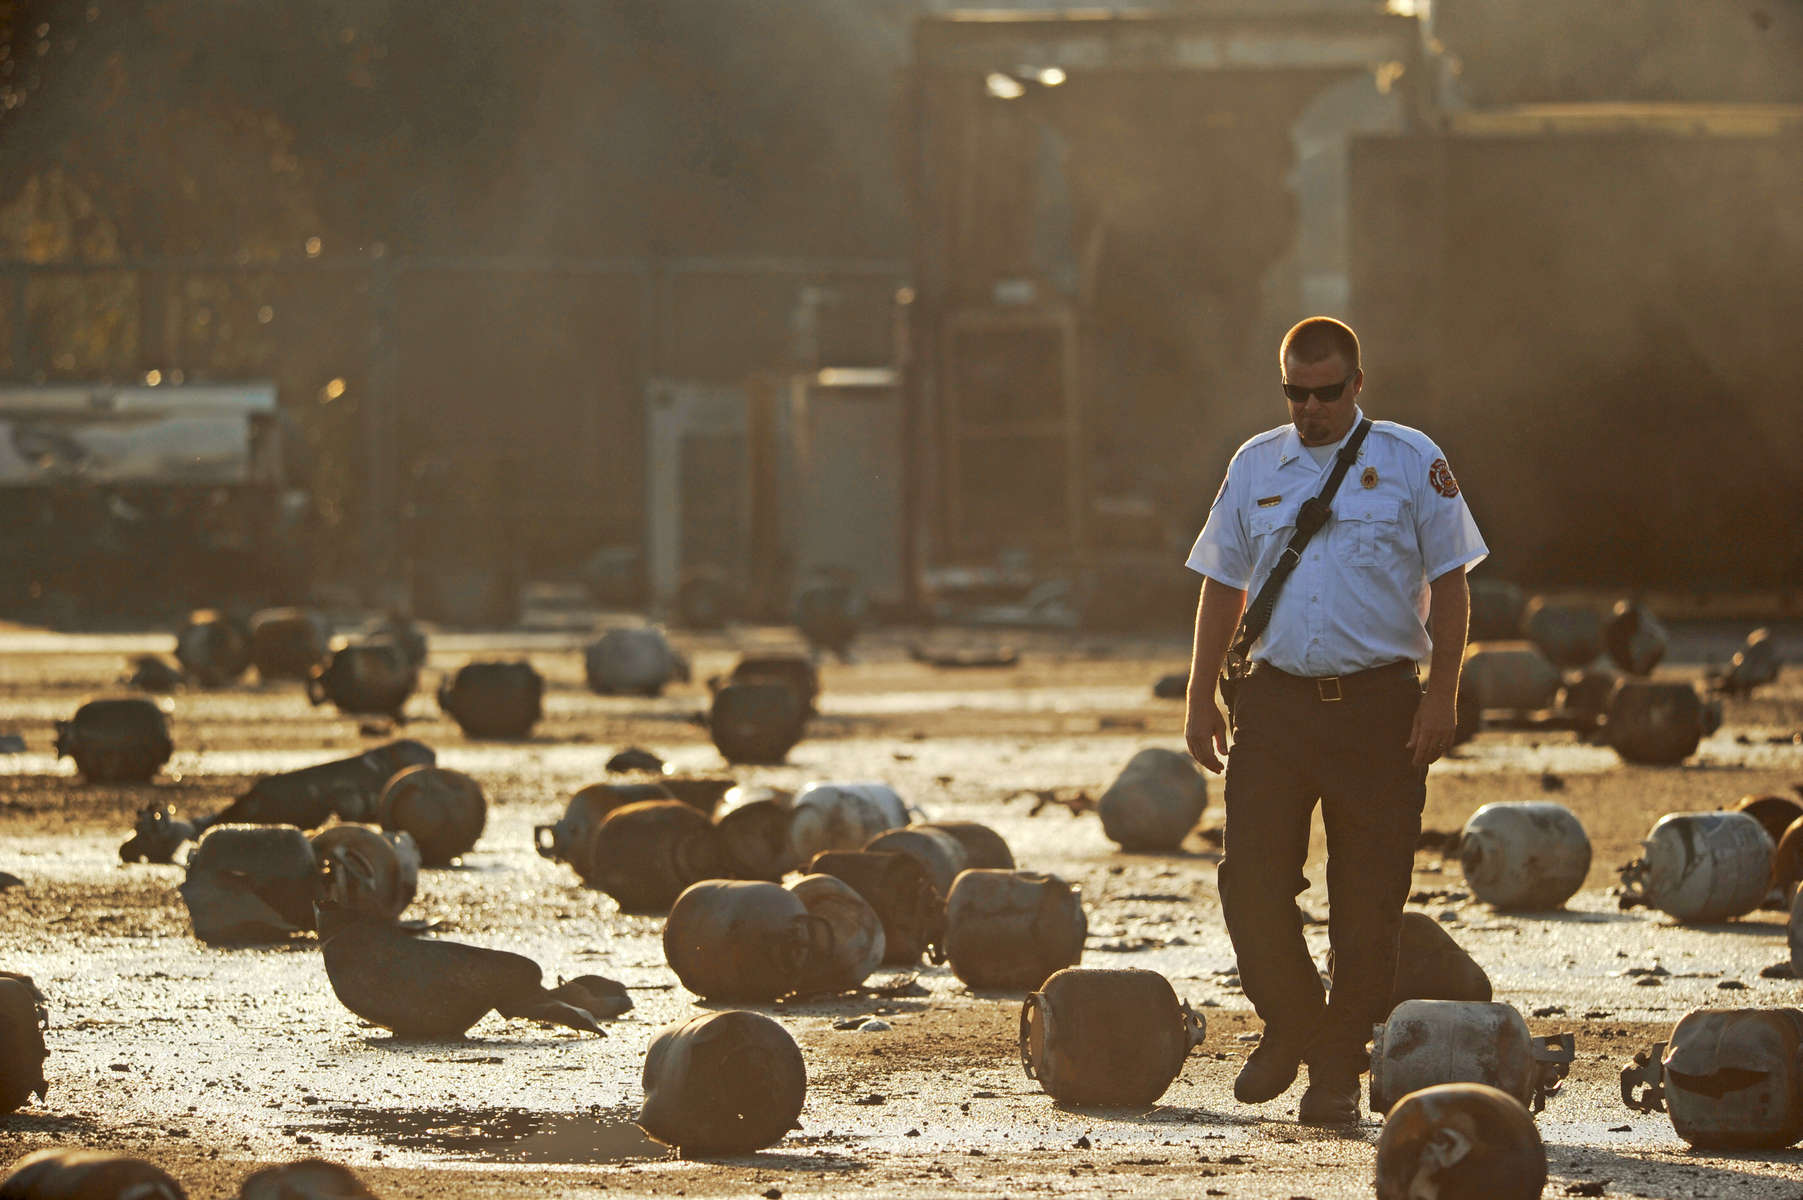 Tavares Fire Battalion Chief Jeff Hosterman walks through the remains of exploded propane cylinders litter the storage yard of a propane plant following massive explosions overnight in the plant's yard on Tuesday, July 30, 2013 in Tavares Fla. Eight people were transported to local hospitals according to Lt. John Herrell of the Lake County Sheriff's Office. No one was killed in the blasts, said Herrell.